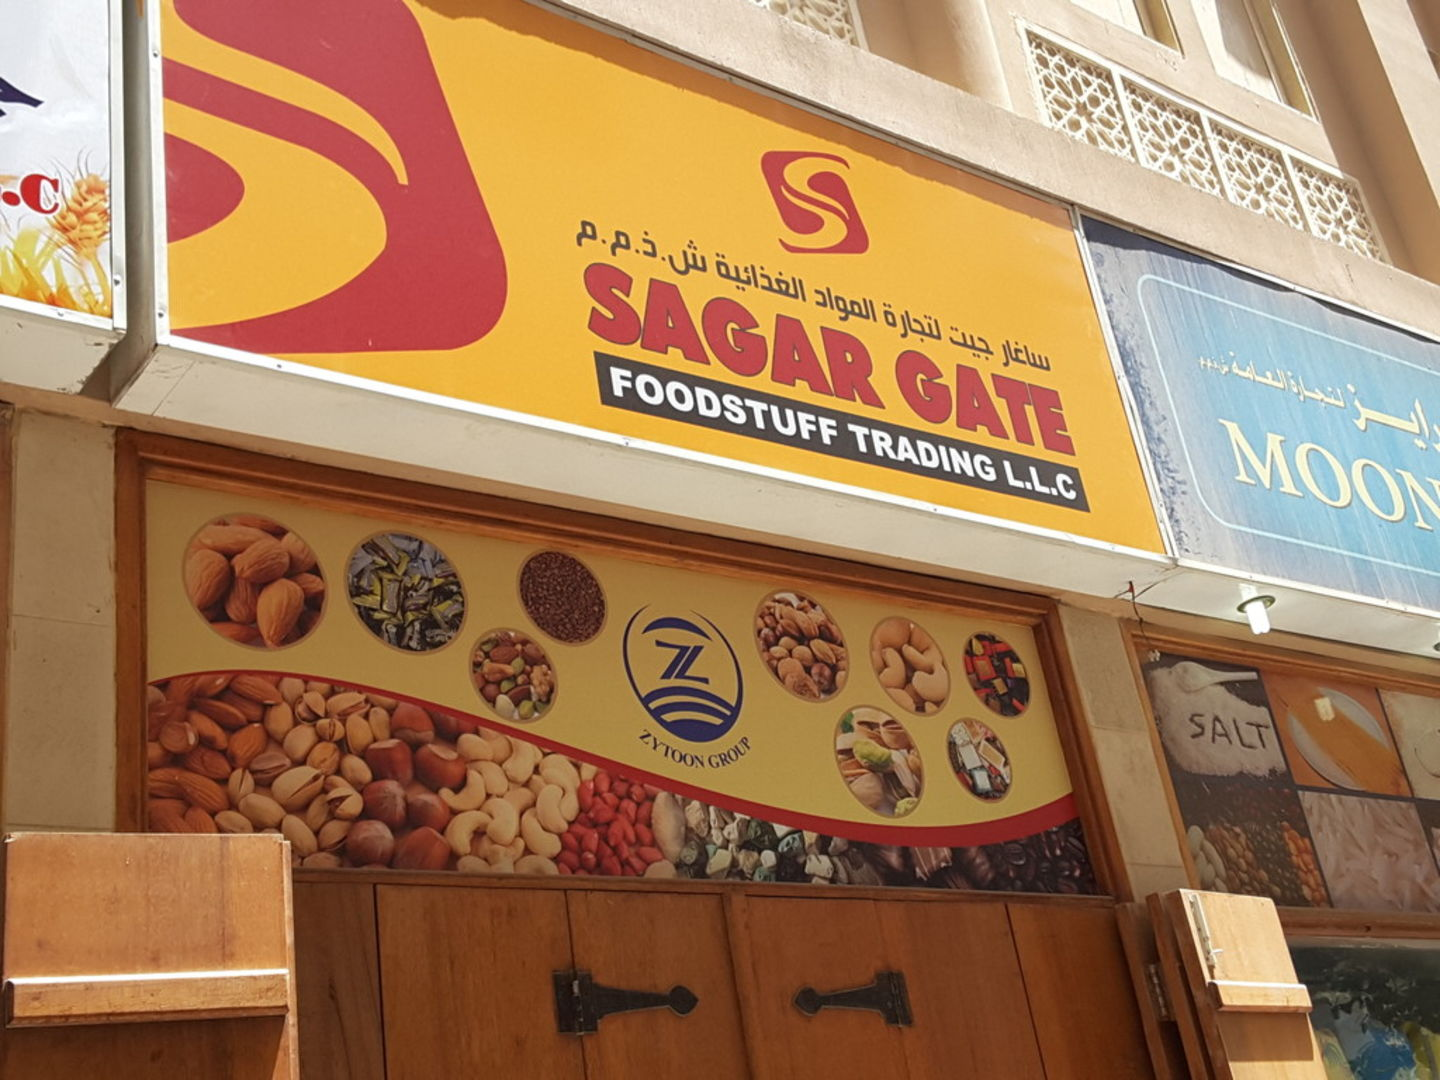 HiDubai-business-sagar-gate-foodstuff-trading-b2b-services-food-stuff-trading-al-ras-dubai-2